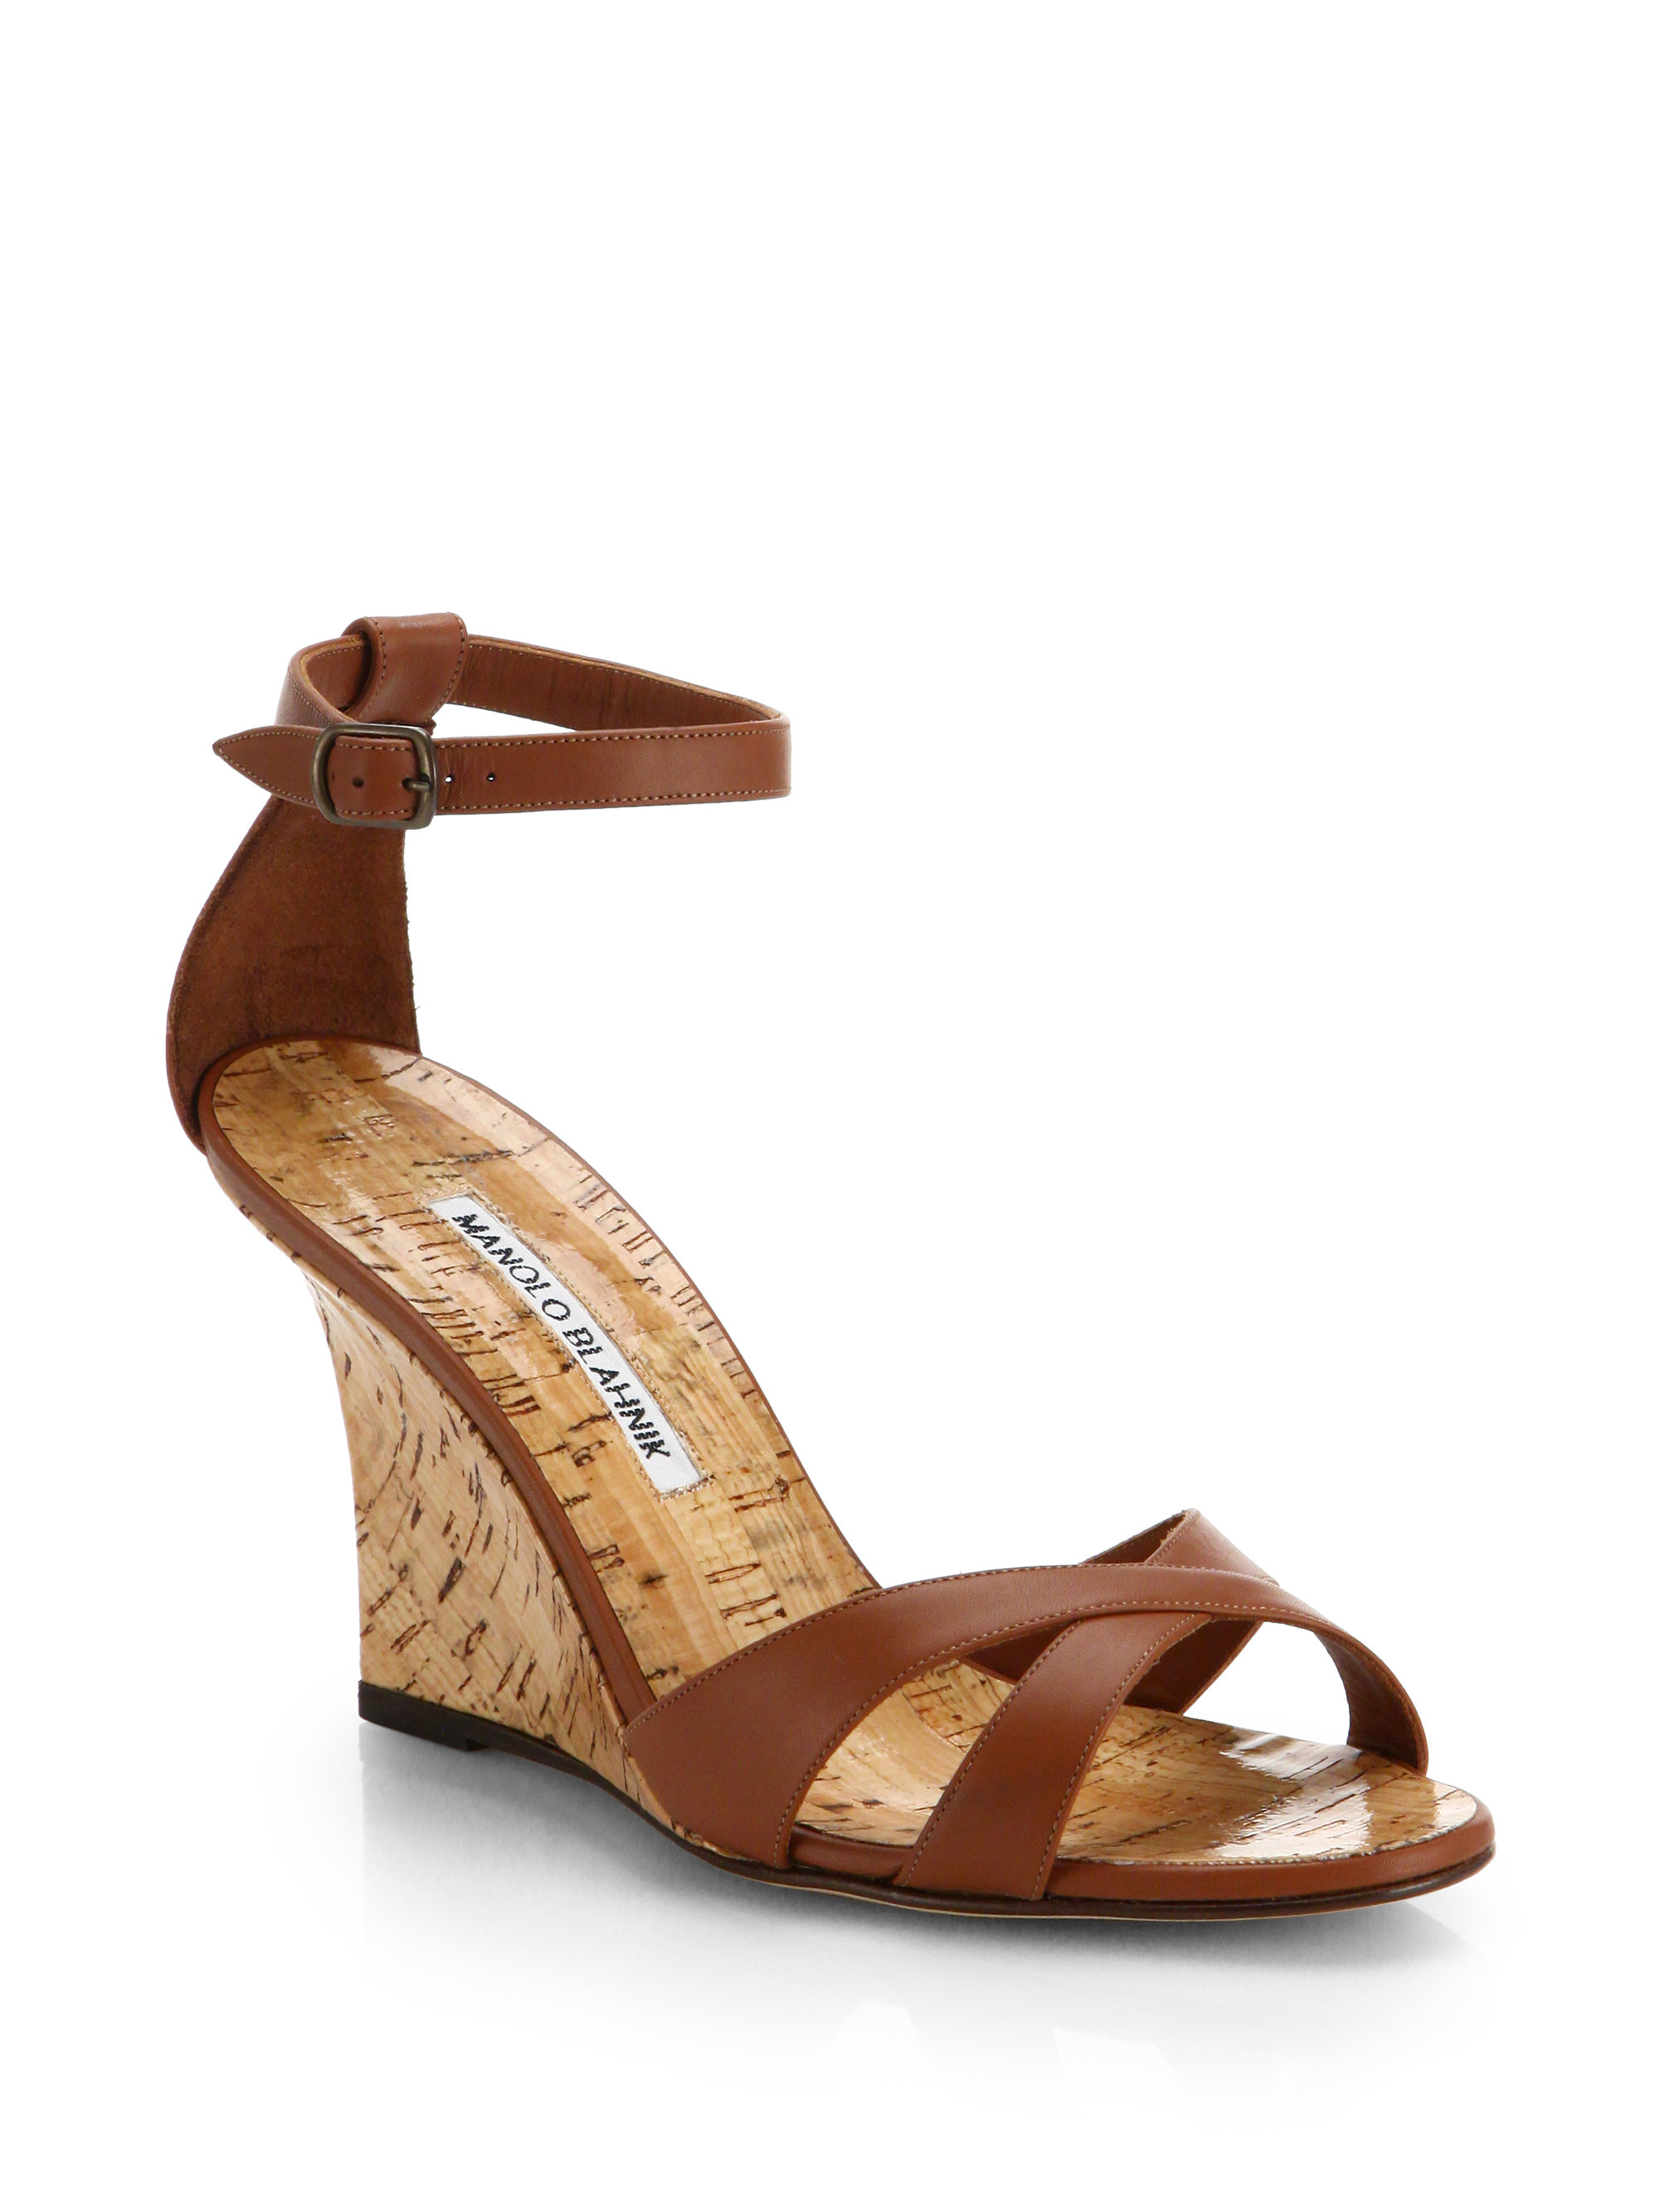 manolo blahnik leather wedge sandals in brown lyst